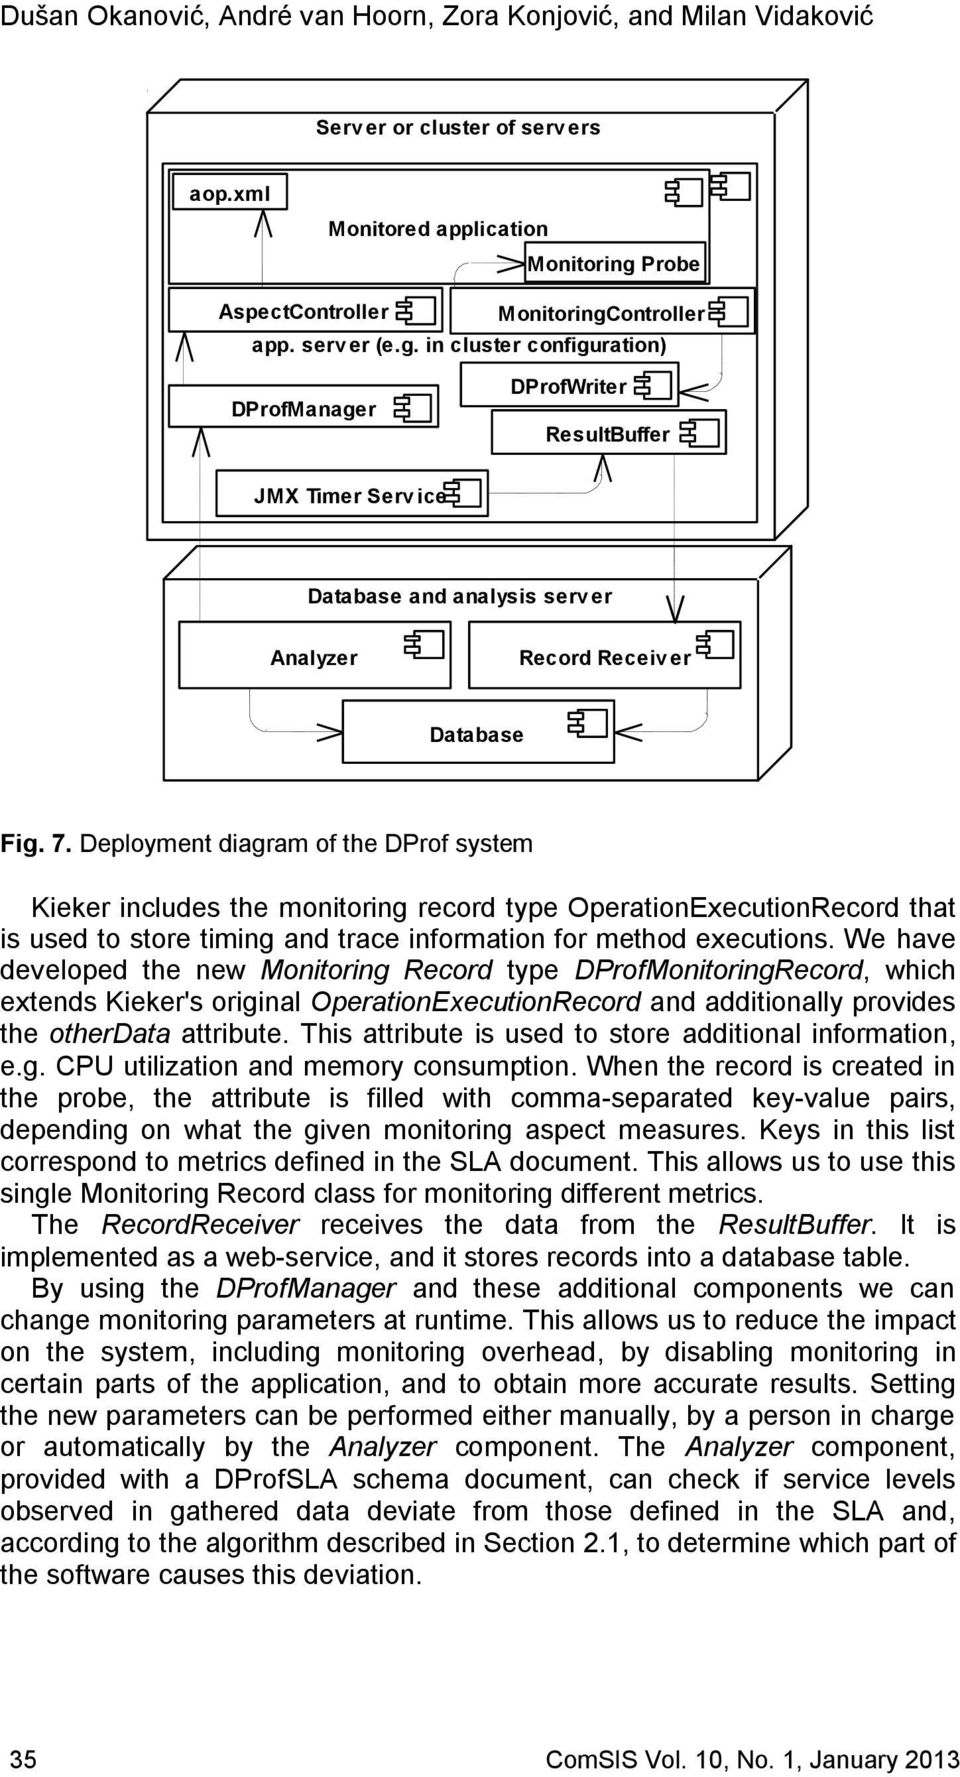 Deployment diagram of the DProf system Kieker includes the monitoring record type OperationExecutionRecord that is used to store timing and trace information for method executions.